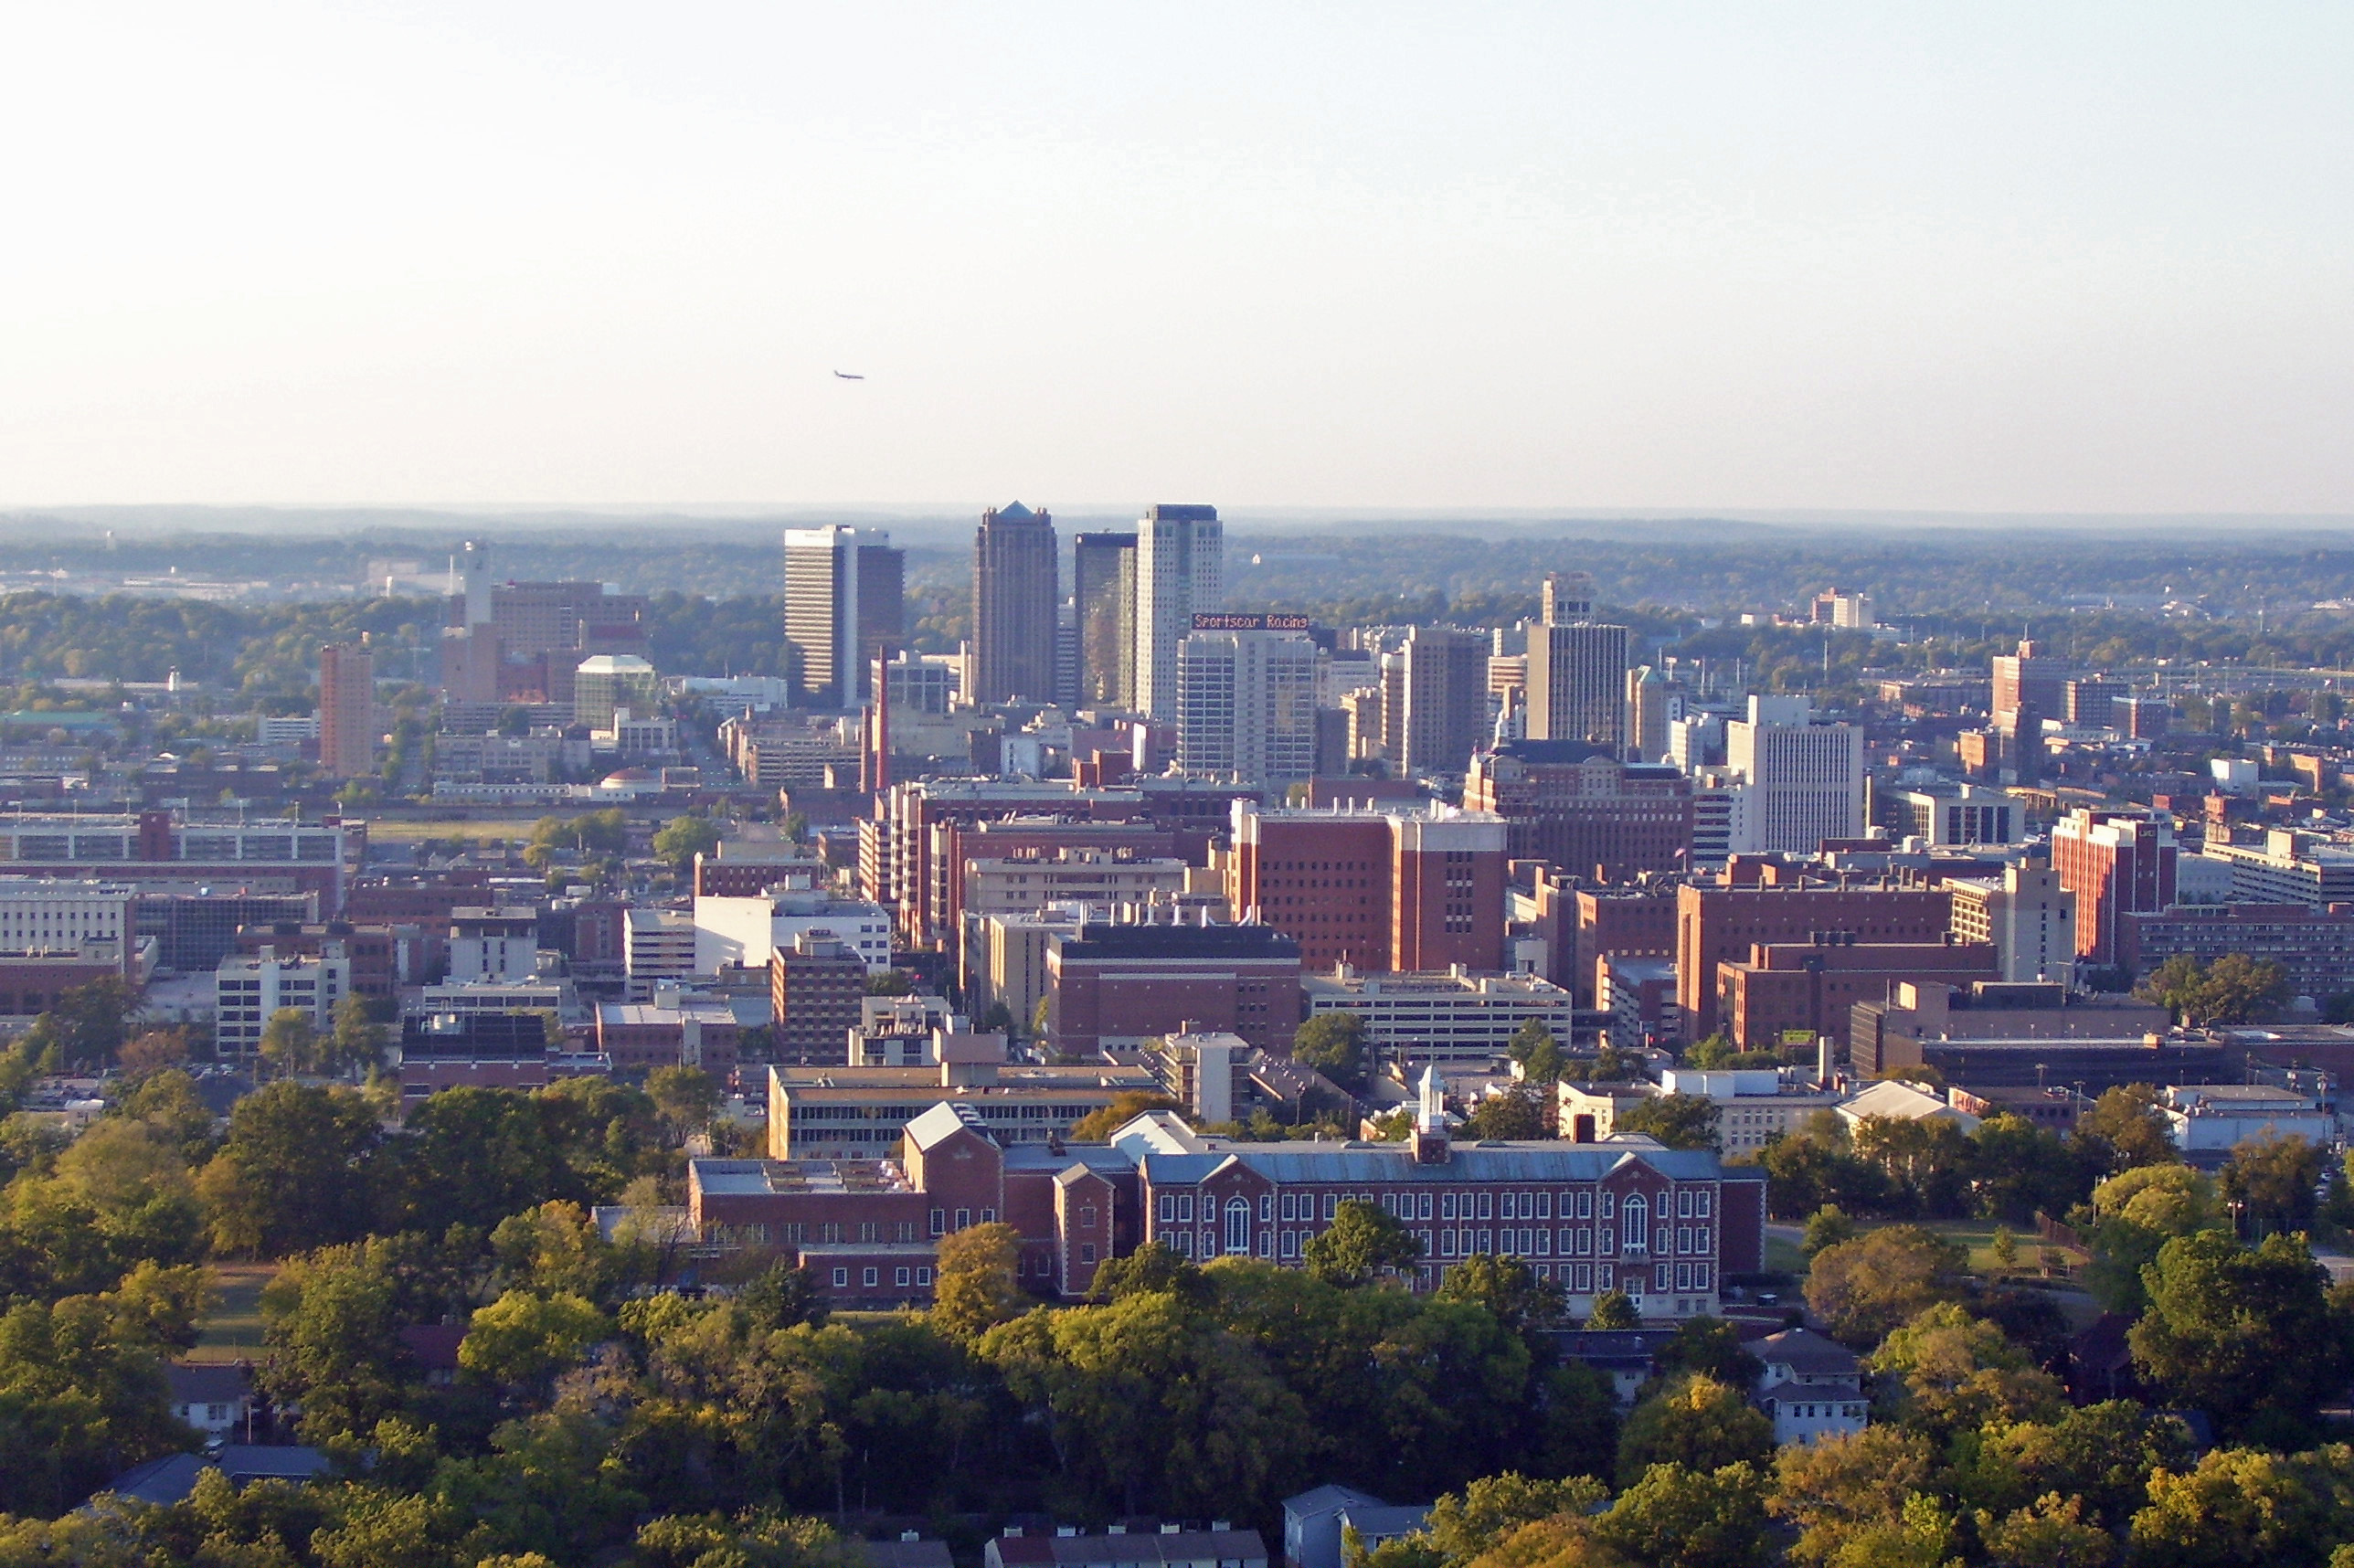 Cityscapes of Birmingham, Alabama viewed from Red Mountain, Files uploaded but not created by User:Gridge, Flickr images reviewed by FlickreviewR, October 2006 photographs